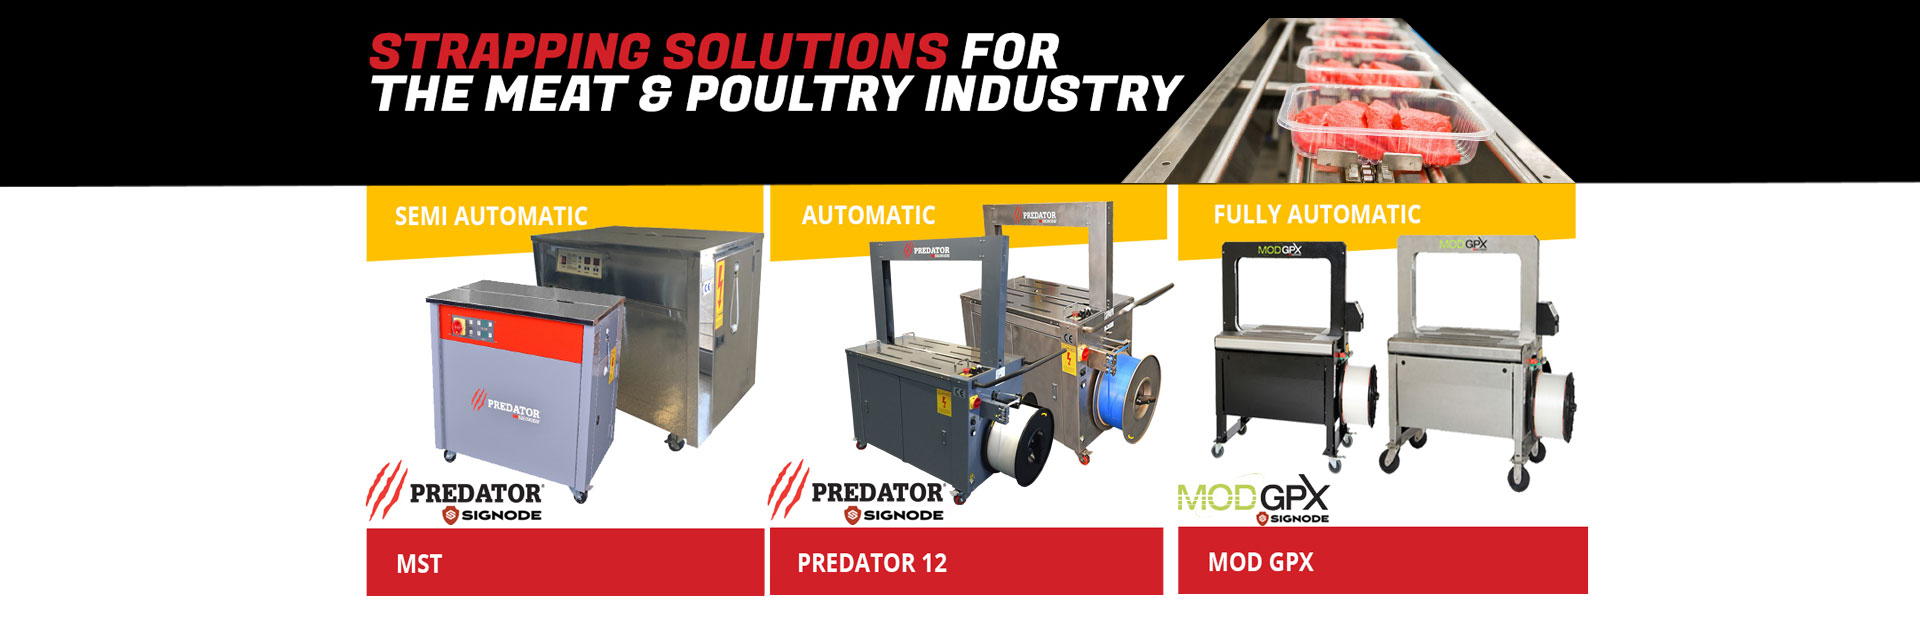 strapping solutions for the meat & poultry industry